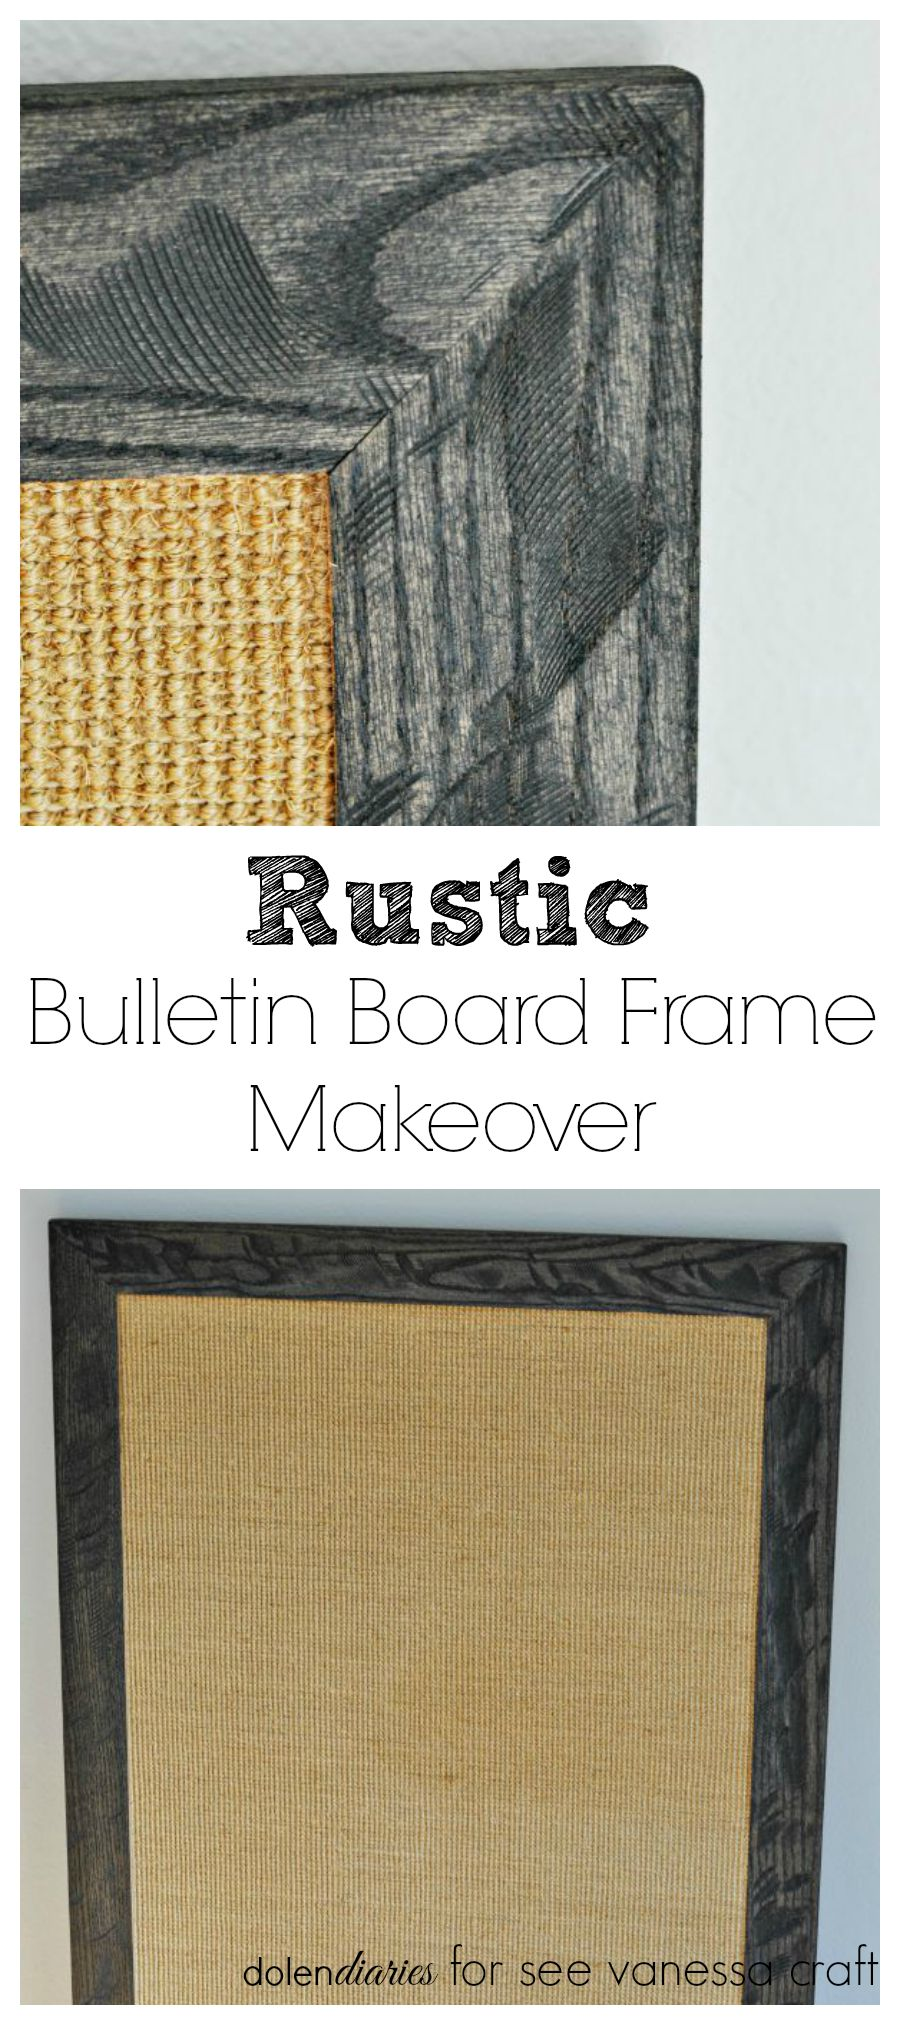 Rustic Bulletin Board Frame Makeover with watermark Collage